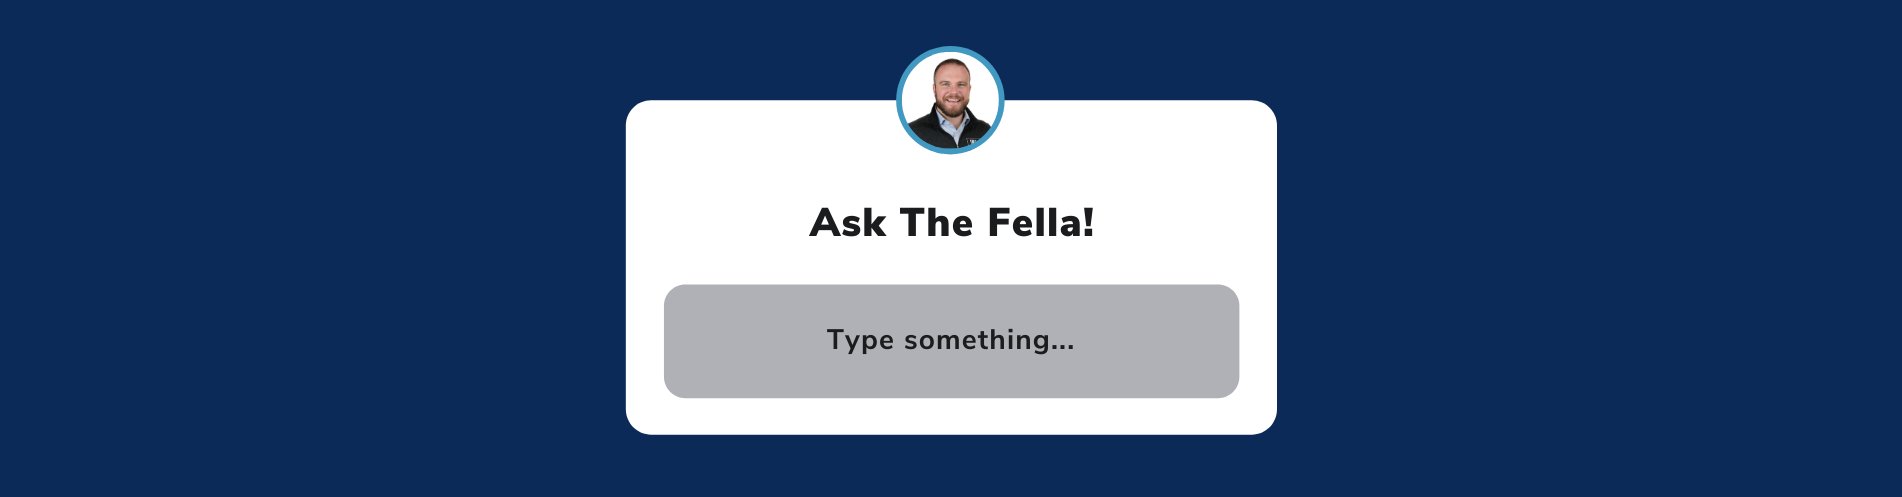 Ask The Fella